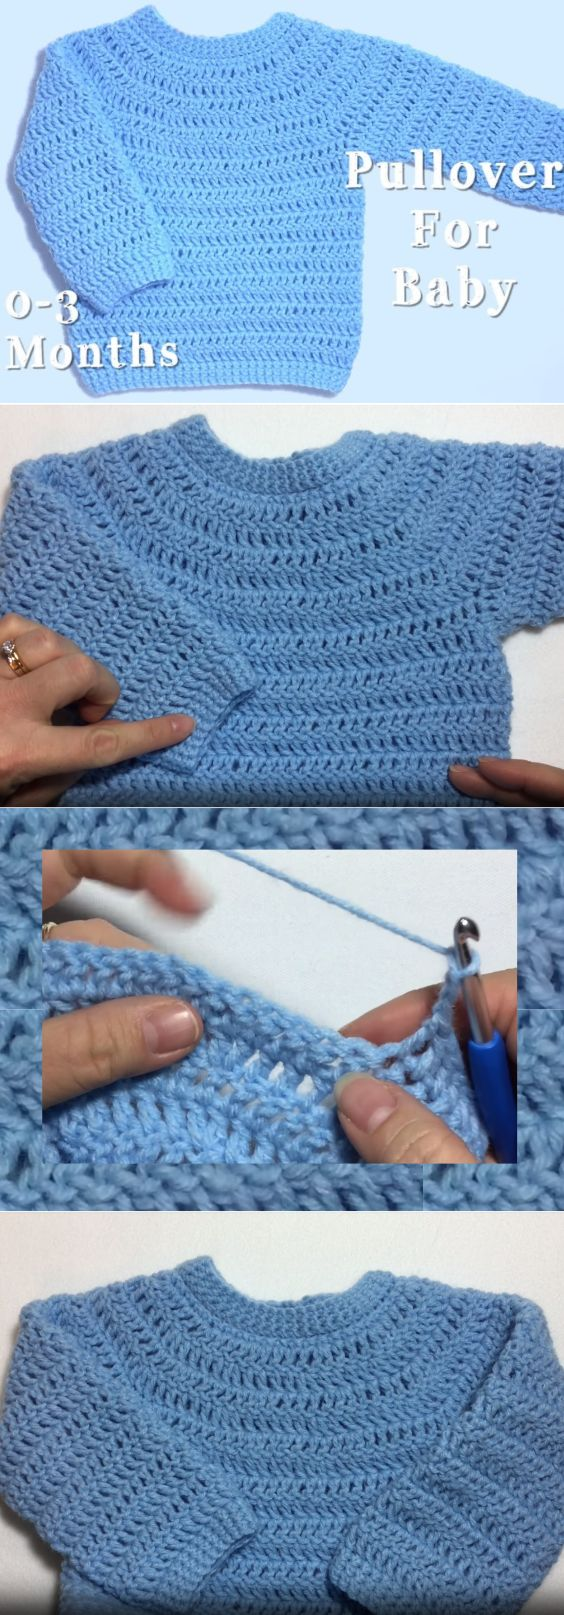 In today's tutorial I will show you how to crochet this easy to do pullover sweater for a baby boy from 0-3 months